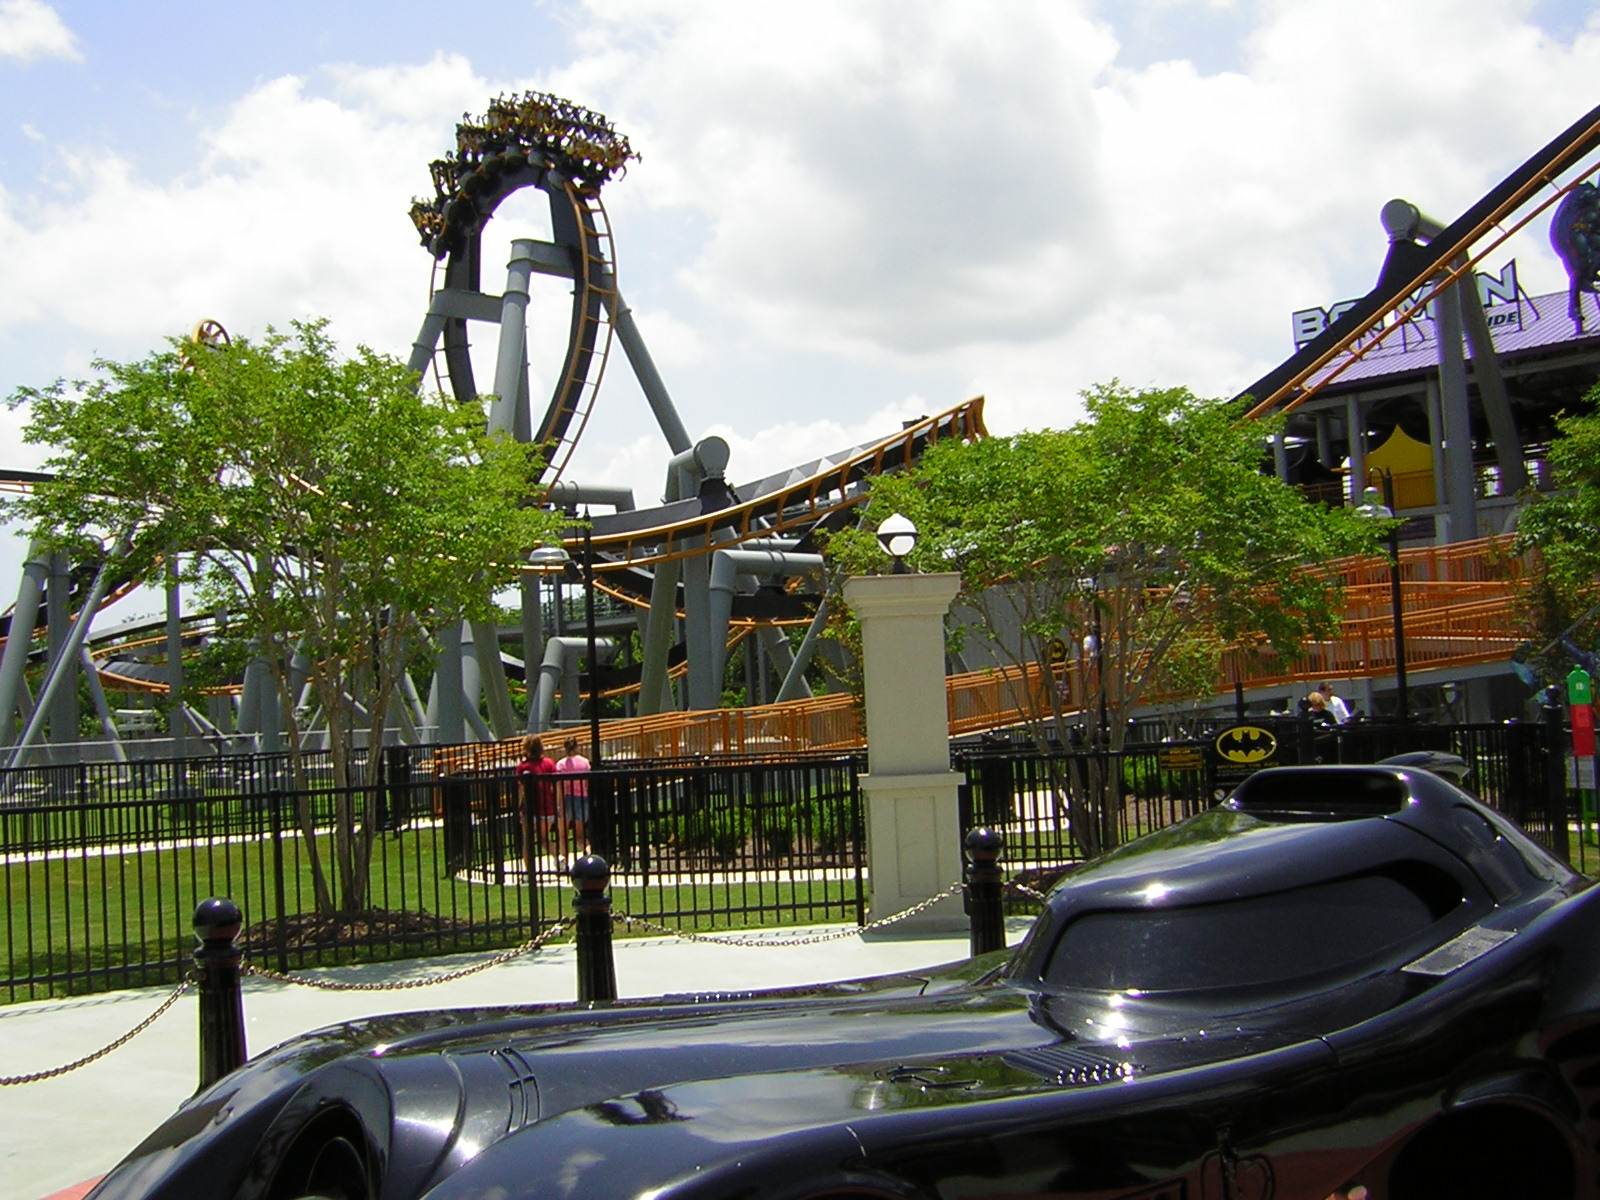 The Batman Ride at Six Flags